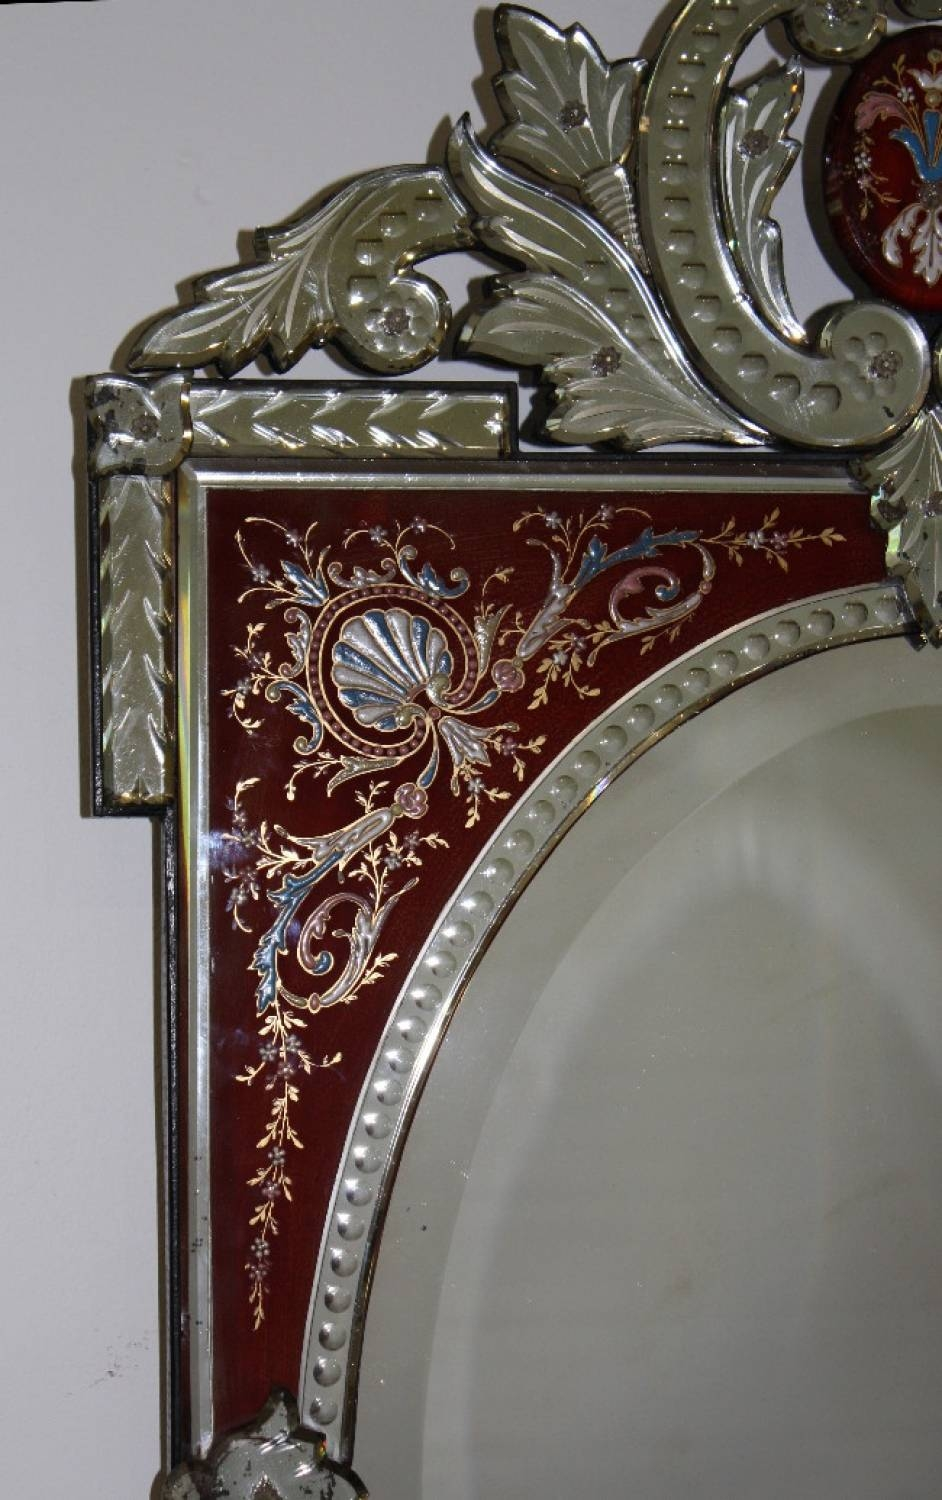 Rare Red-Framed Antique Venetian Mirror regarding Antique Venetian Mirrors (Image 20 of 25)